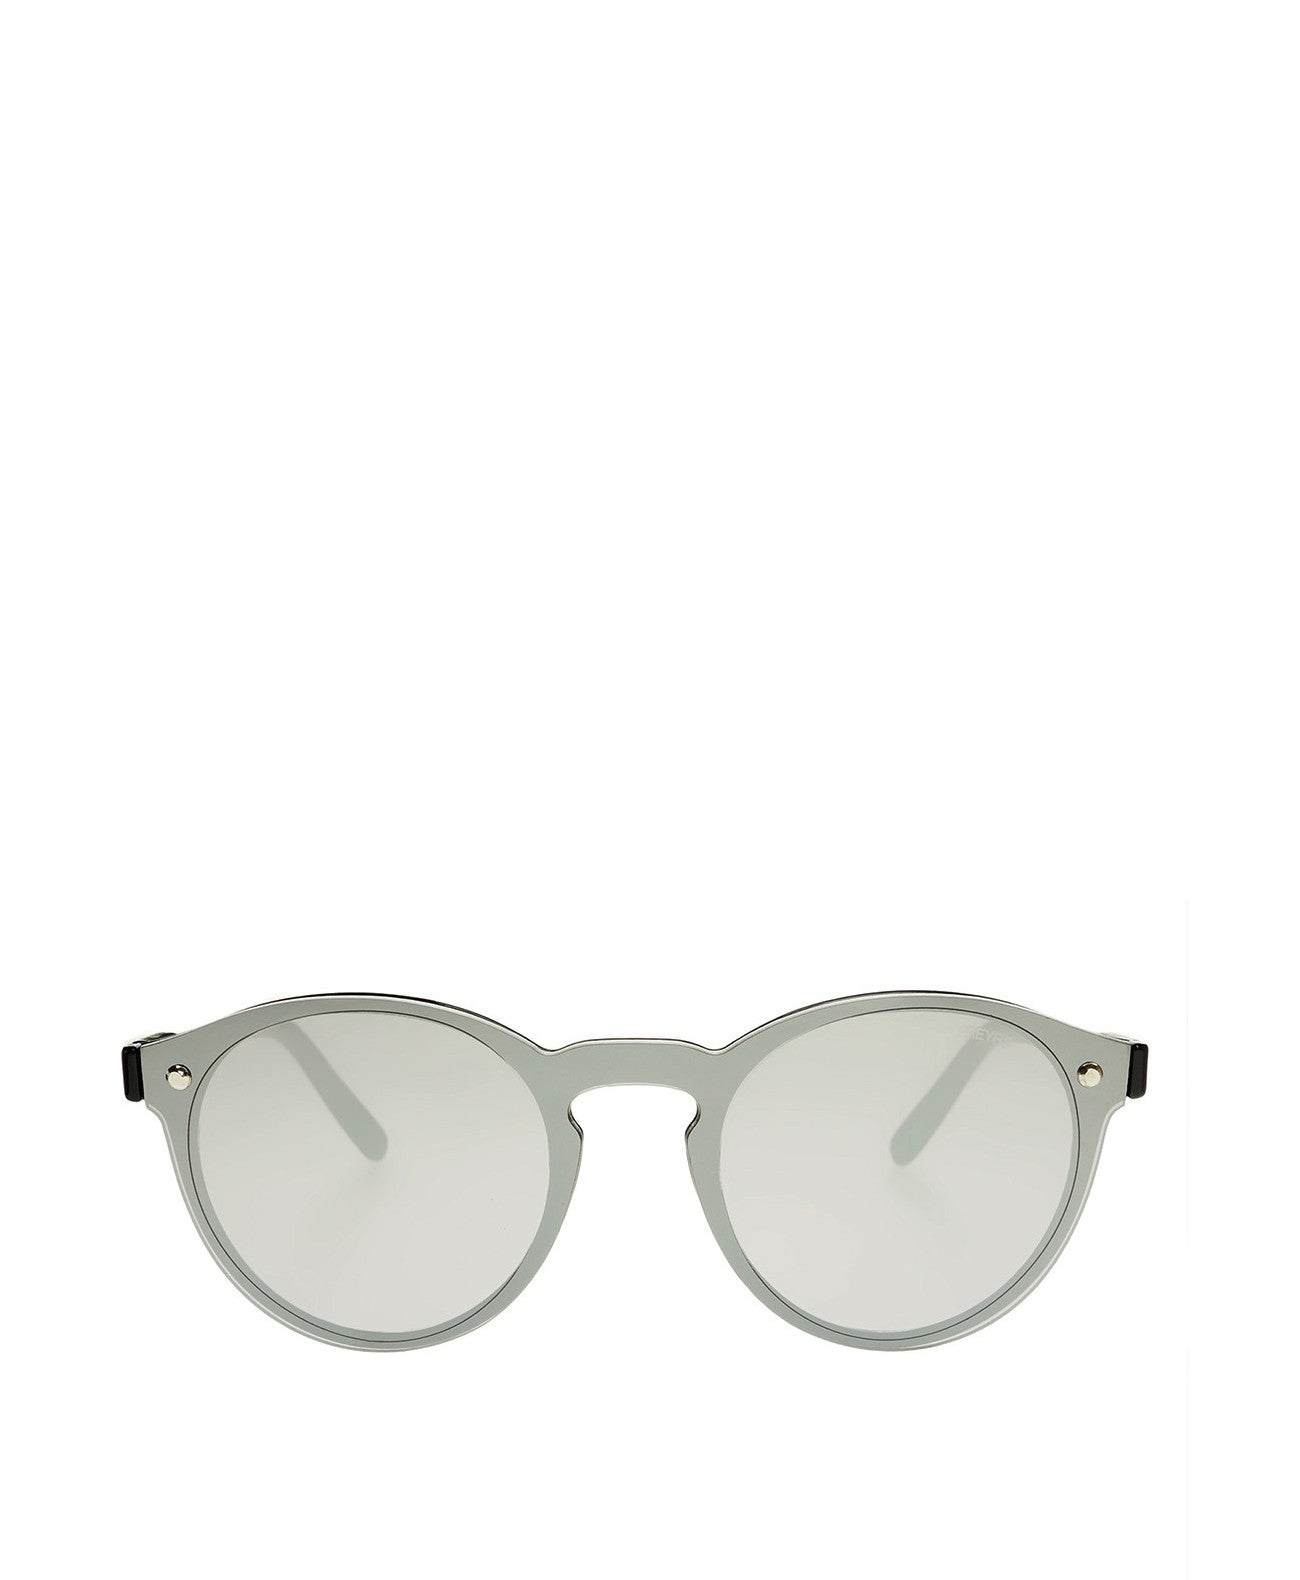 Morgan-Blk Morgan Unisex Sunglasses